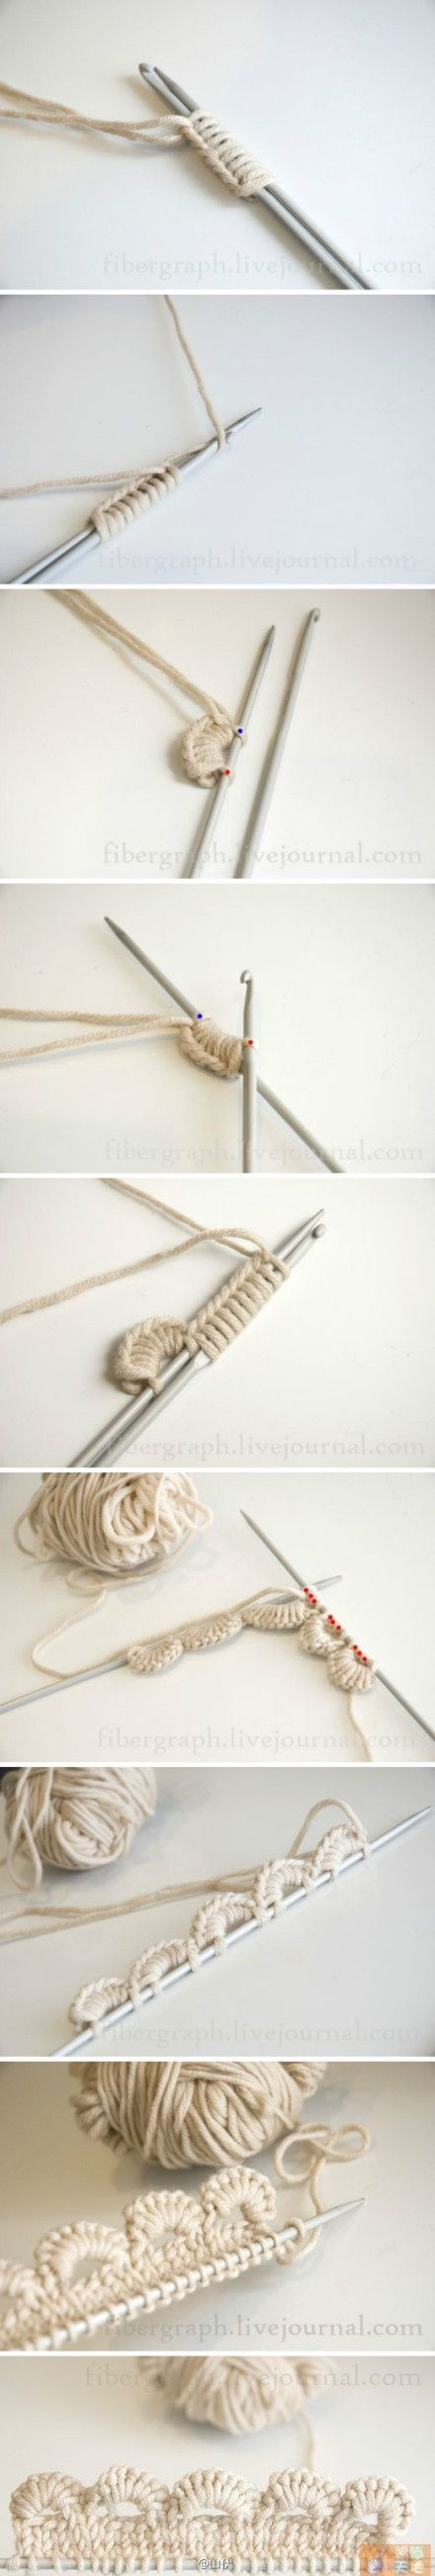 """Super Idee mit Stricknadeln und Häkelnadel arbeiten. [   """"Knitting + Crochet = Such an interesting way to get a crocheted scallop edge onto a knitting project. I can see a summer top made in organic cotton yarn using this technique!"""",   """"花边 Crochet scallop edge cast on knitting needles."""",   """"Tutorial Picot cast on, It"""